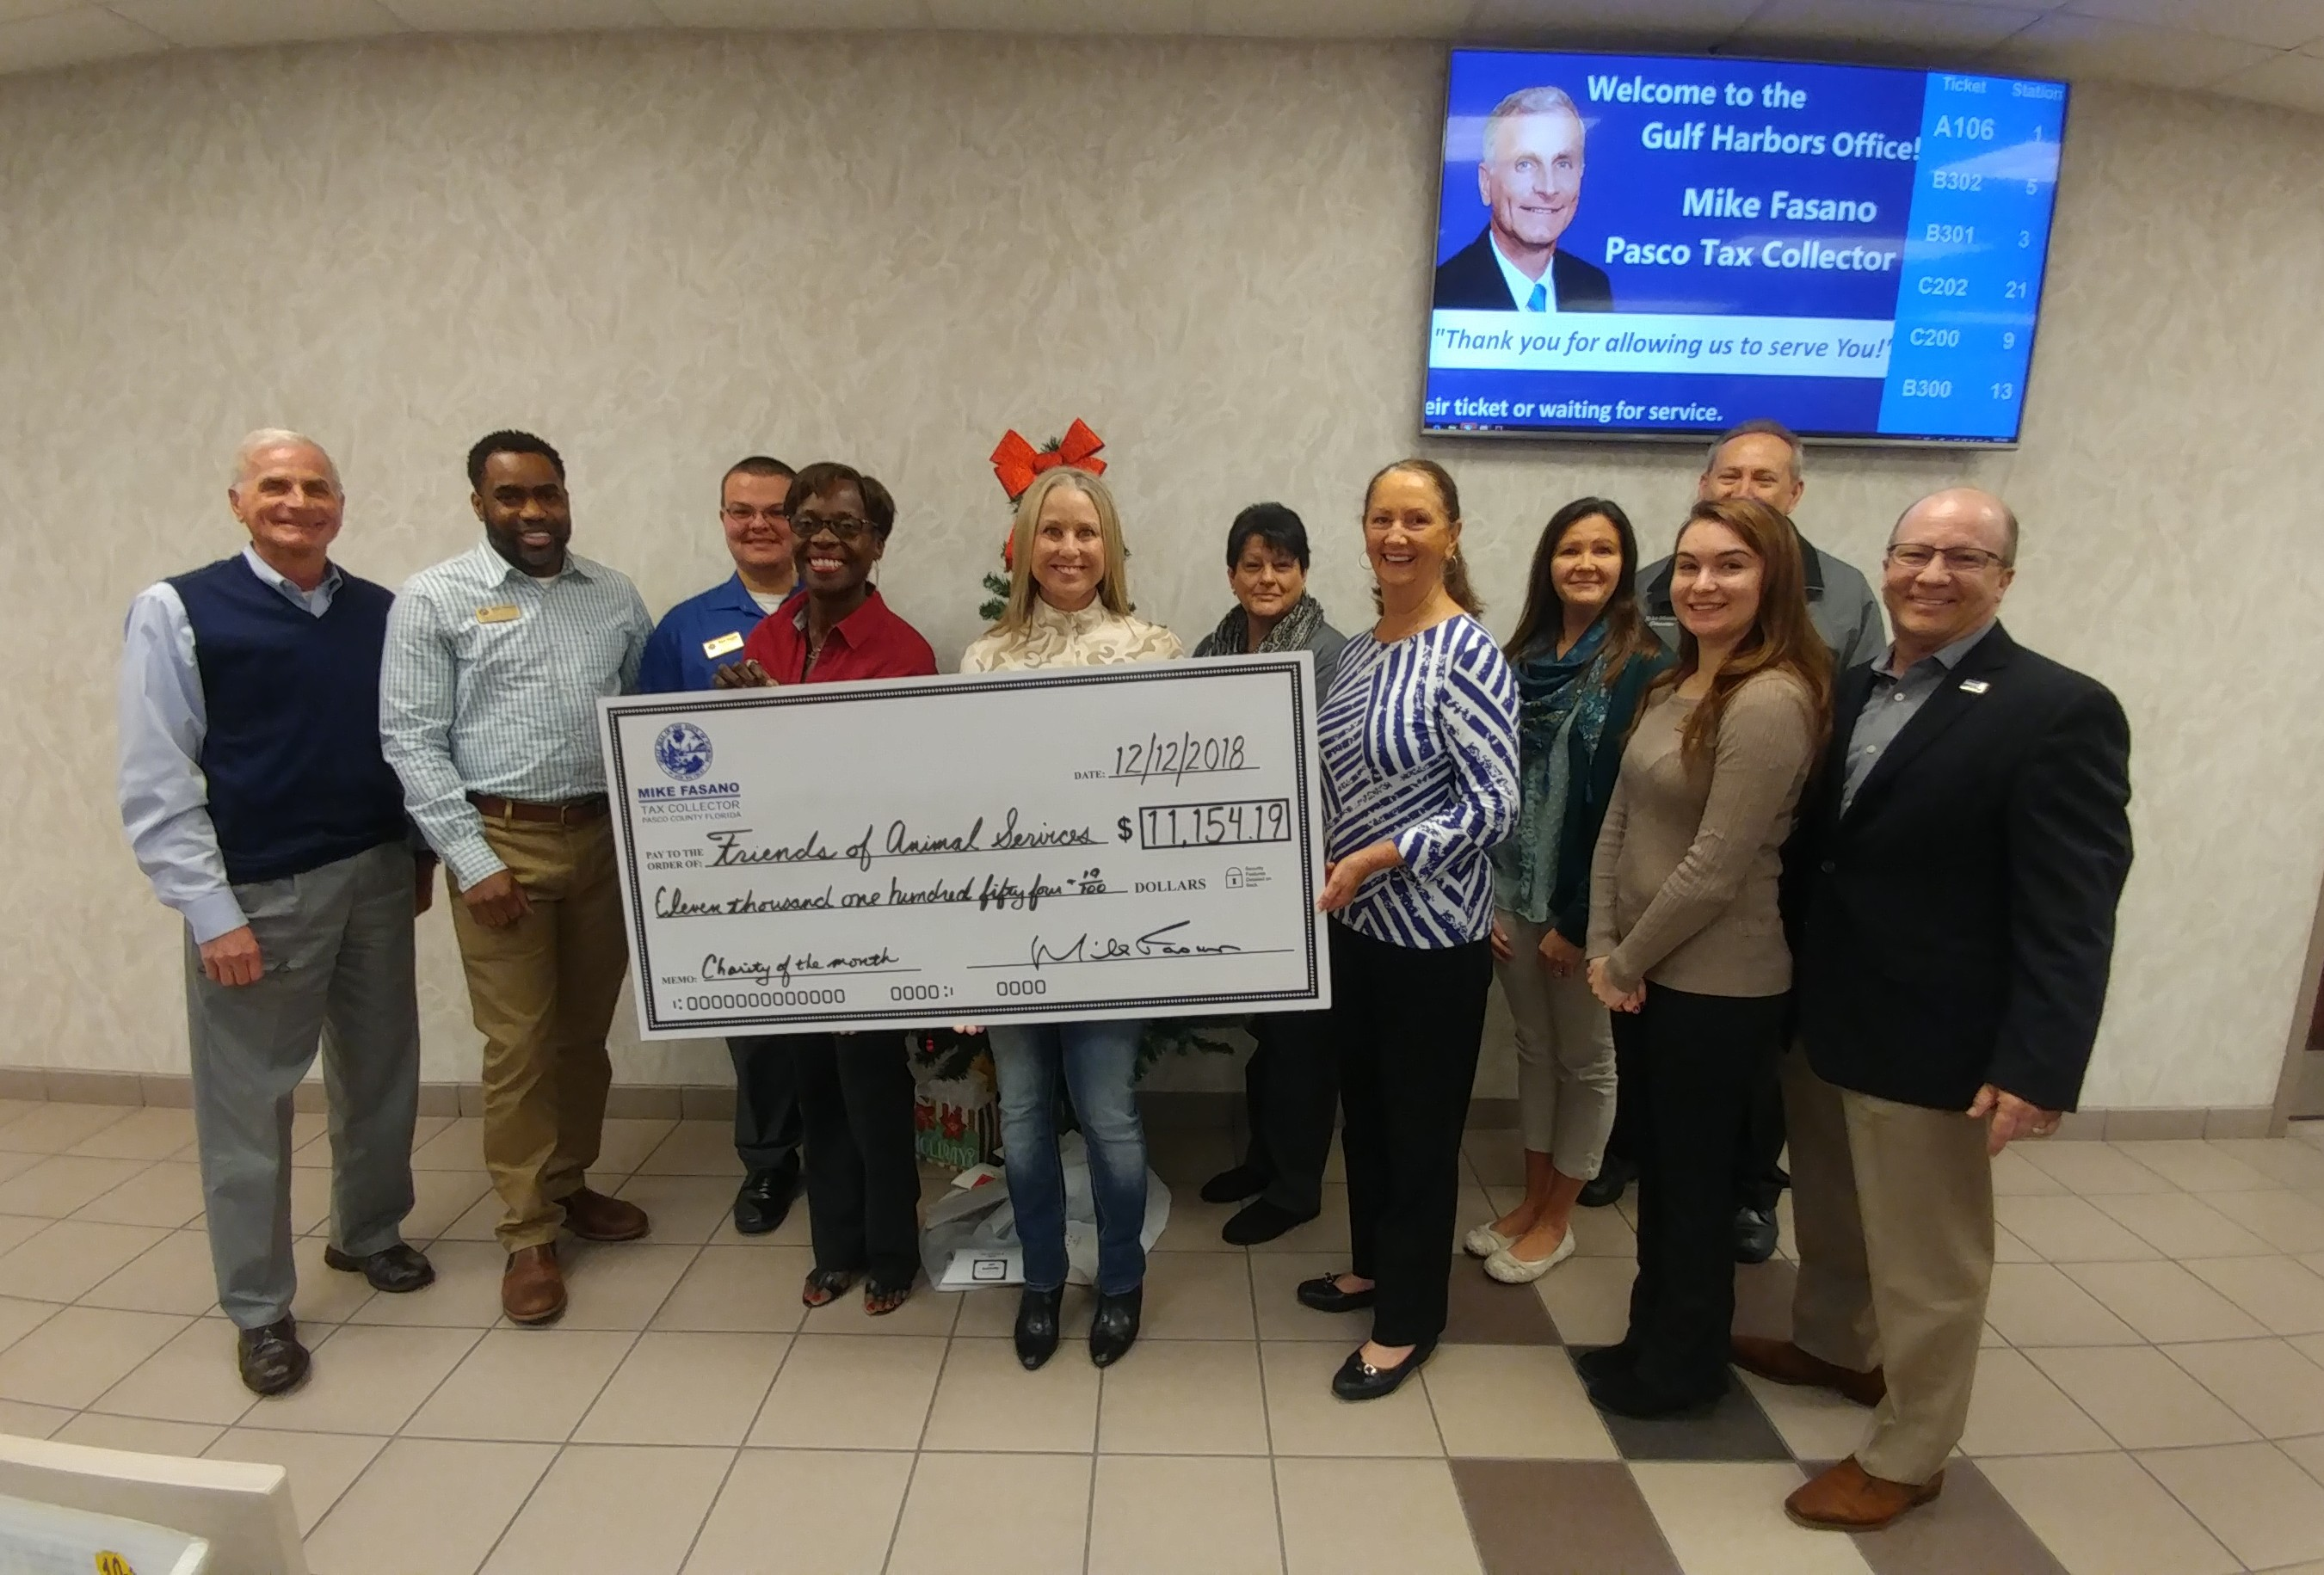 from left to right – Tax Collector Mike Fasano; Supervisor Carlton Francis; Customer Service Representative Tyler Albritton; Assistant Manager Harriette Sorezza; Abby Cox, Friends of Animal Services; Supervisor Janice Reda; Darlene Green, Friends of Animal Services; Supervisor Mikala Ballard; Customer Service Representative Lauren Mazzone; Mike Shumate, Manager of Pasco Animal Services & Michael Cox, Friends of Animal Services.